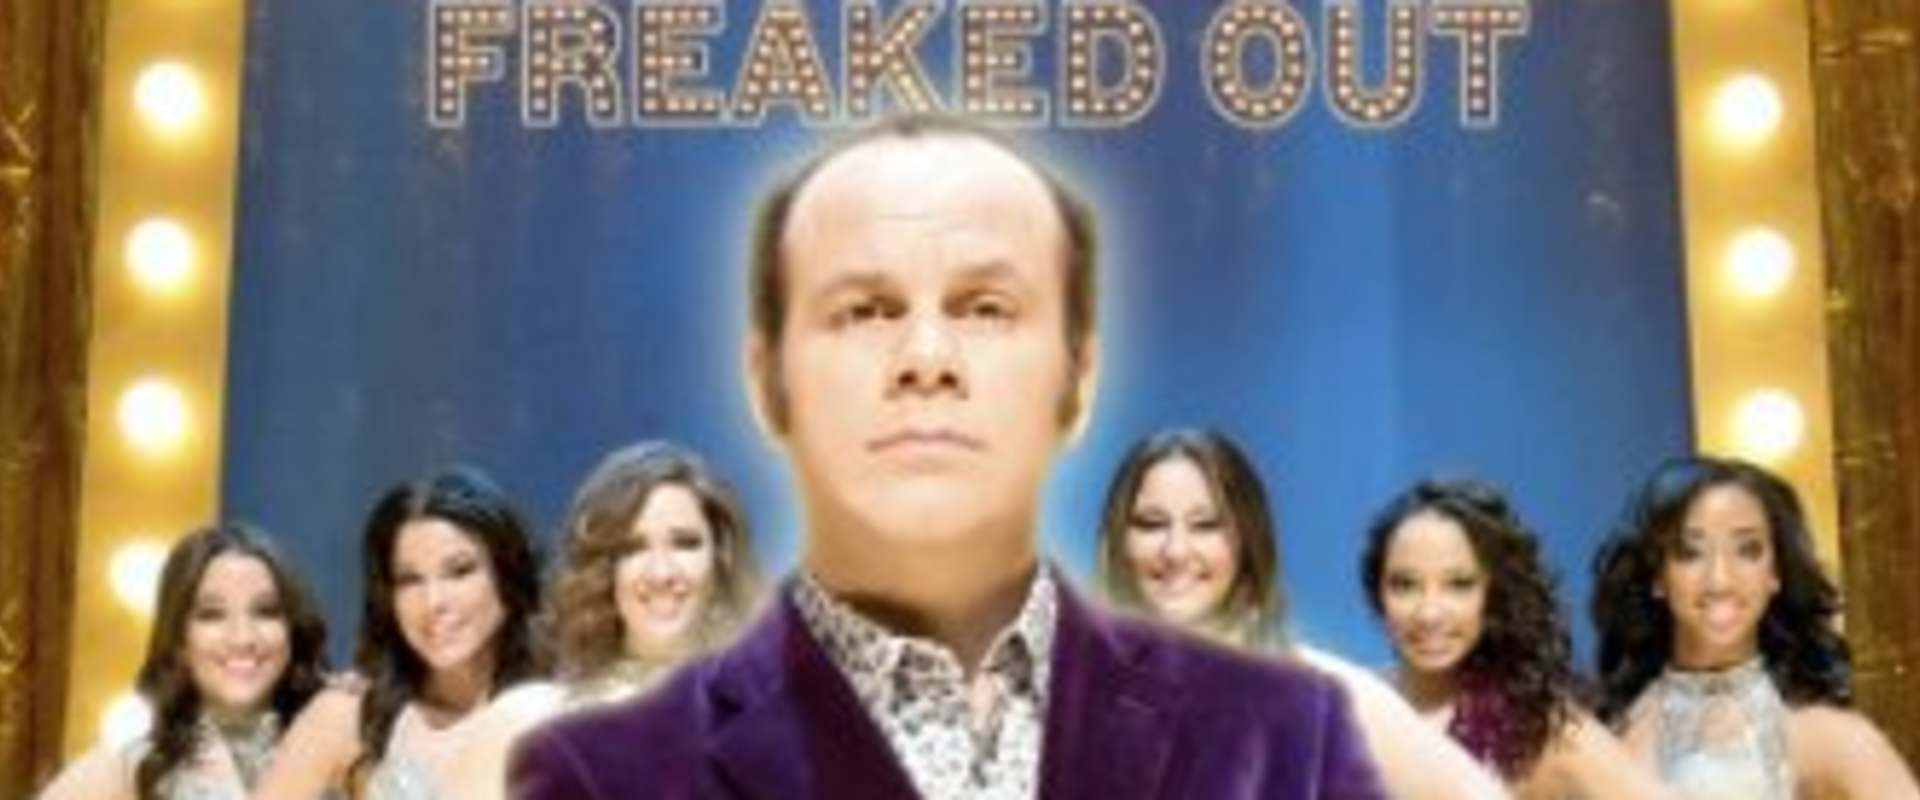 Tom Papa: Freaked Out background 1